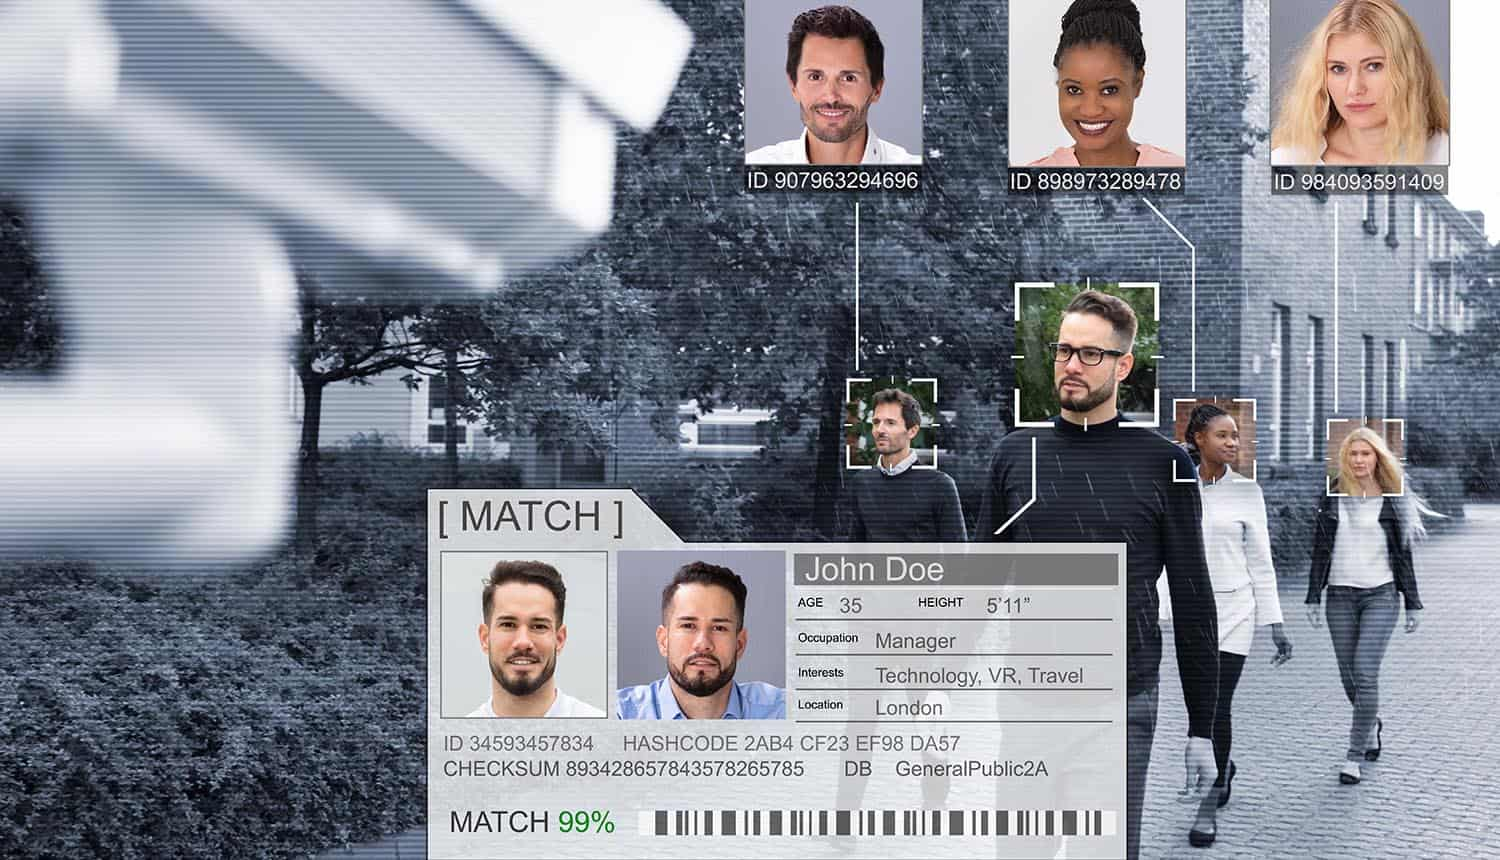 Facial Recognition Surveillance Technology Should Be Suspended in the U.S. Says Coalition of 40 Privacy and Free Speech Groups